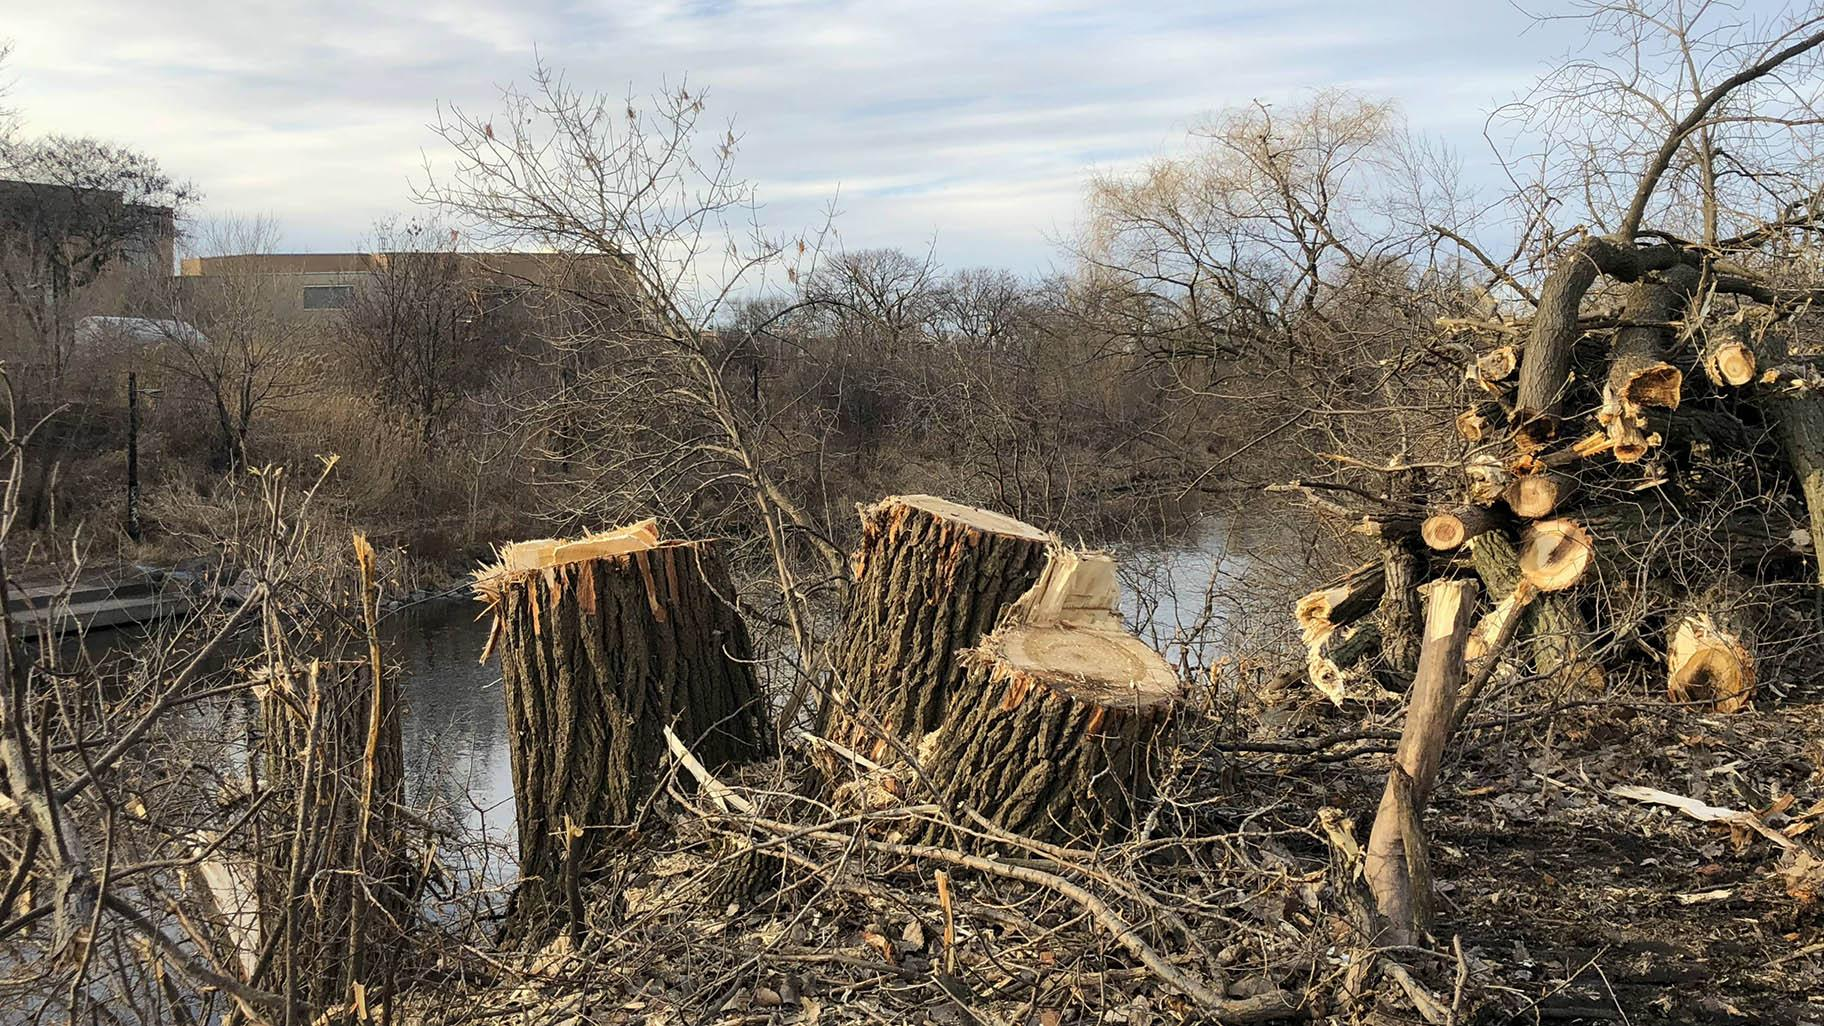 The east bank of the North Shore Channel has been stripped of foliage in Legion Park as part of a habitat restoration project. (Patty Wetli / WTTW News)